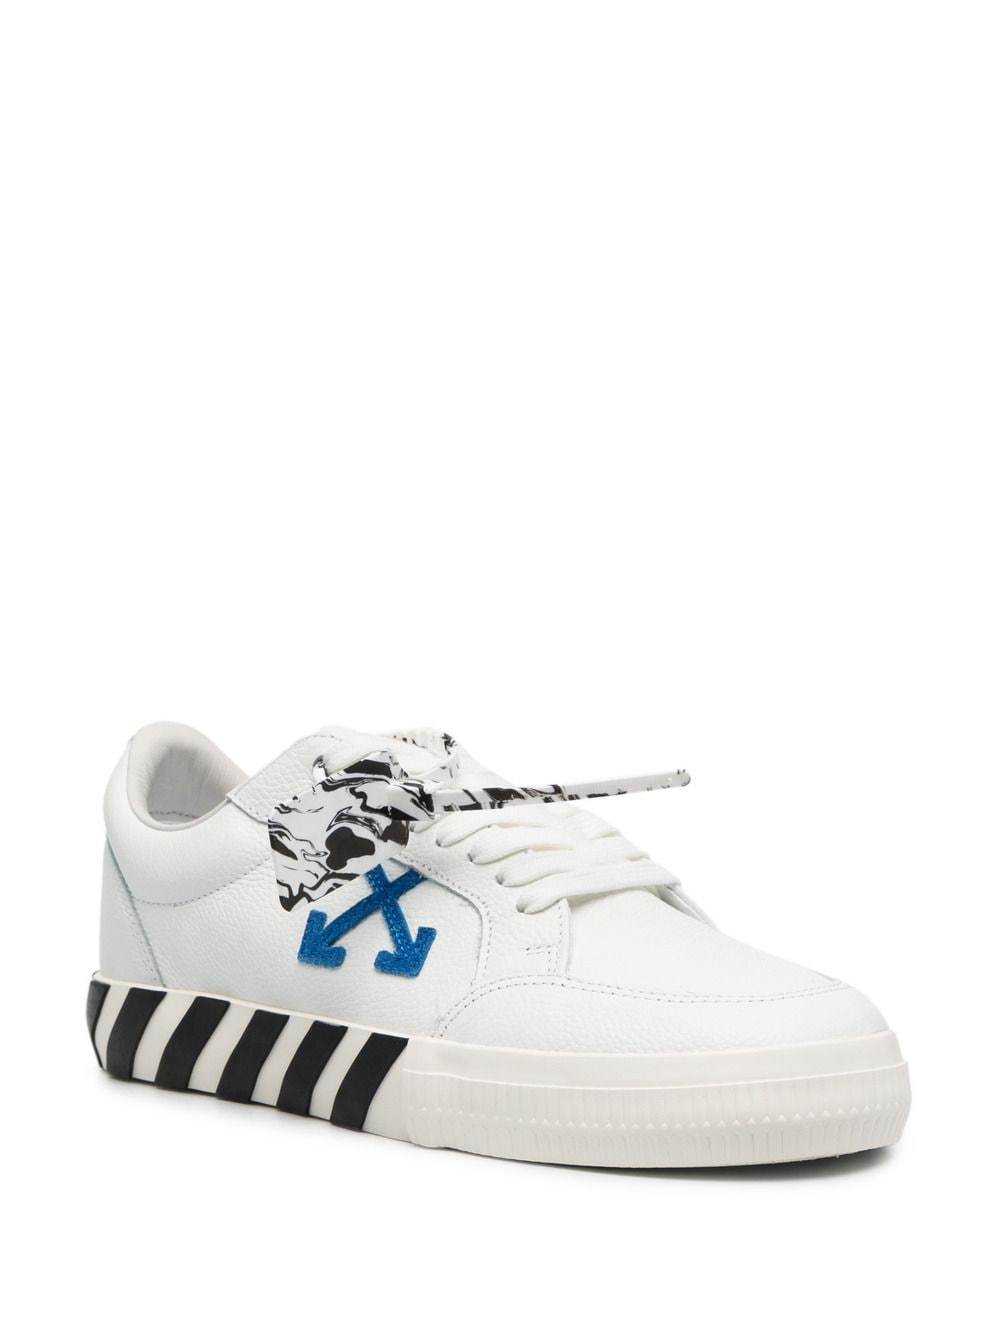 OFF-WHITE Low Vulcanized Sneakers White/Blue